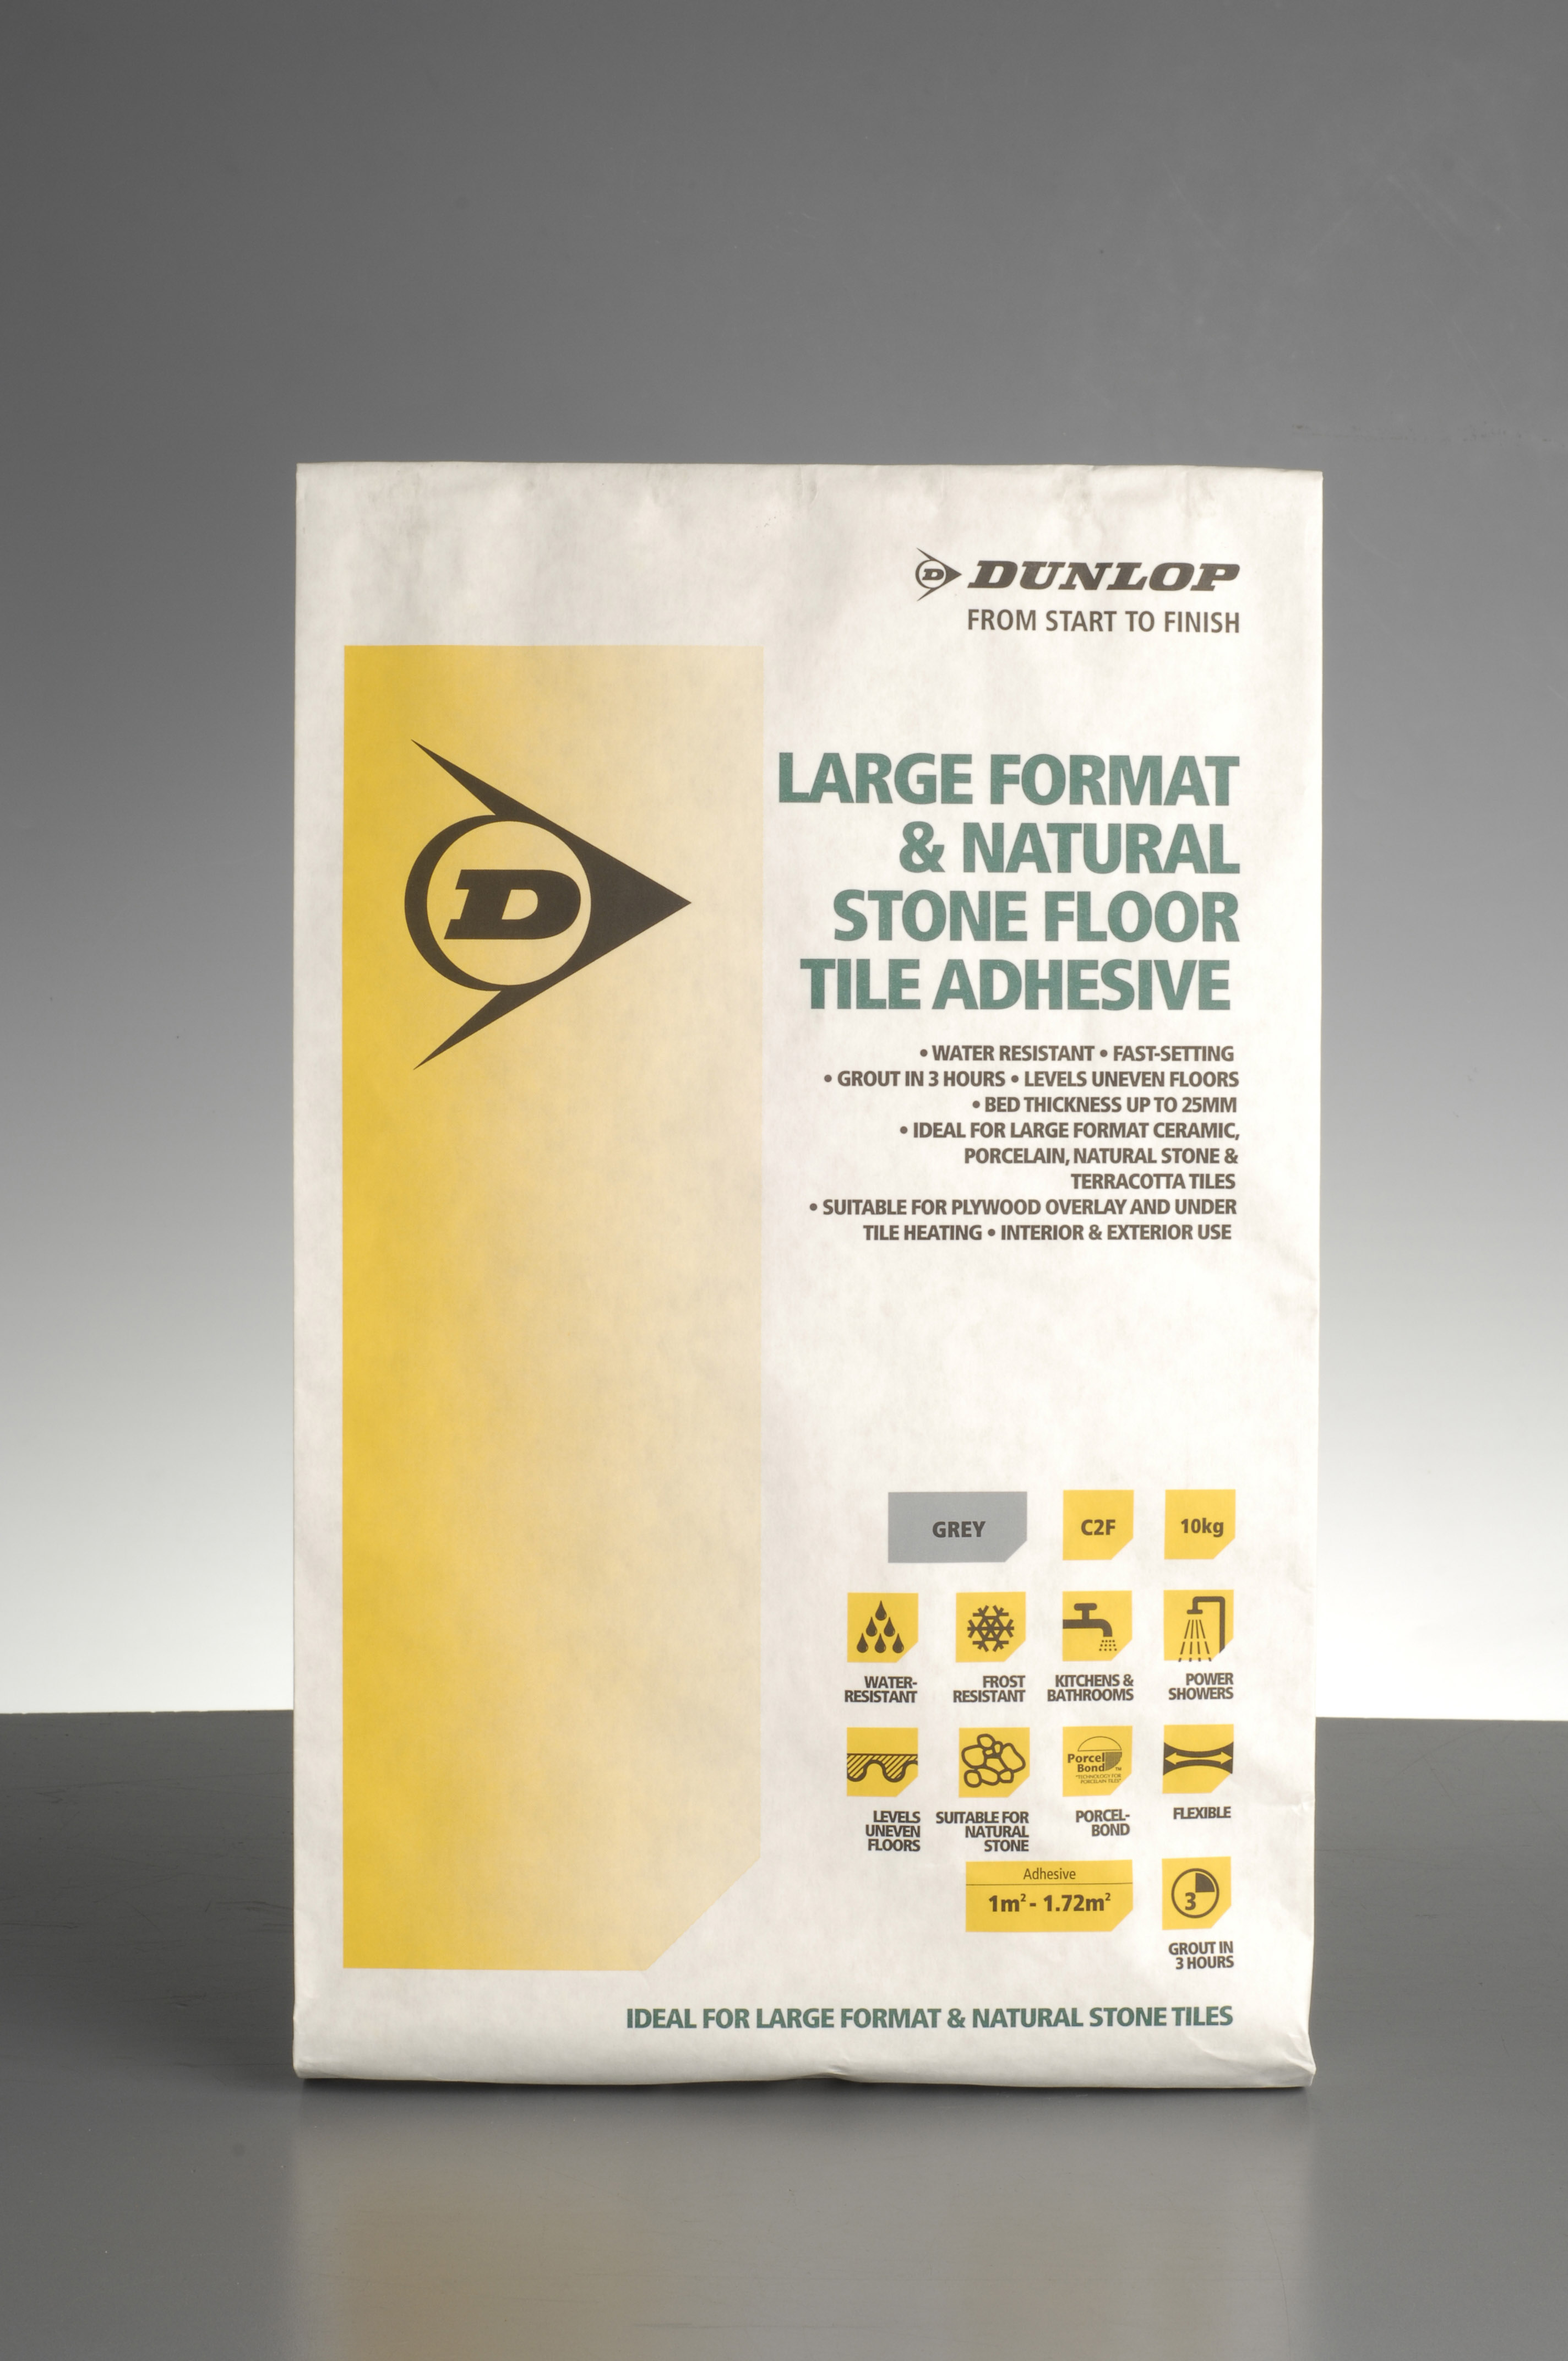 Dunlop's Large Format and Natural Stone Adhesive incorporates porcel bond technology that helps bond the tiles to the adhesive.